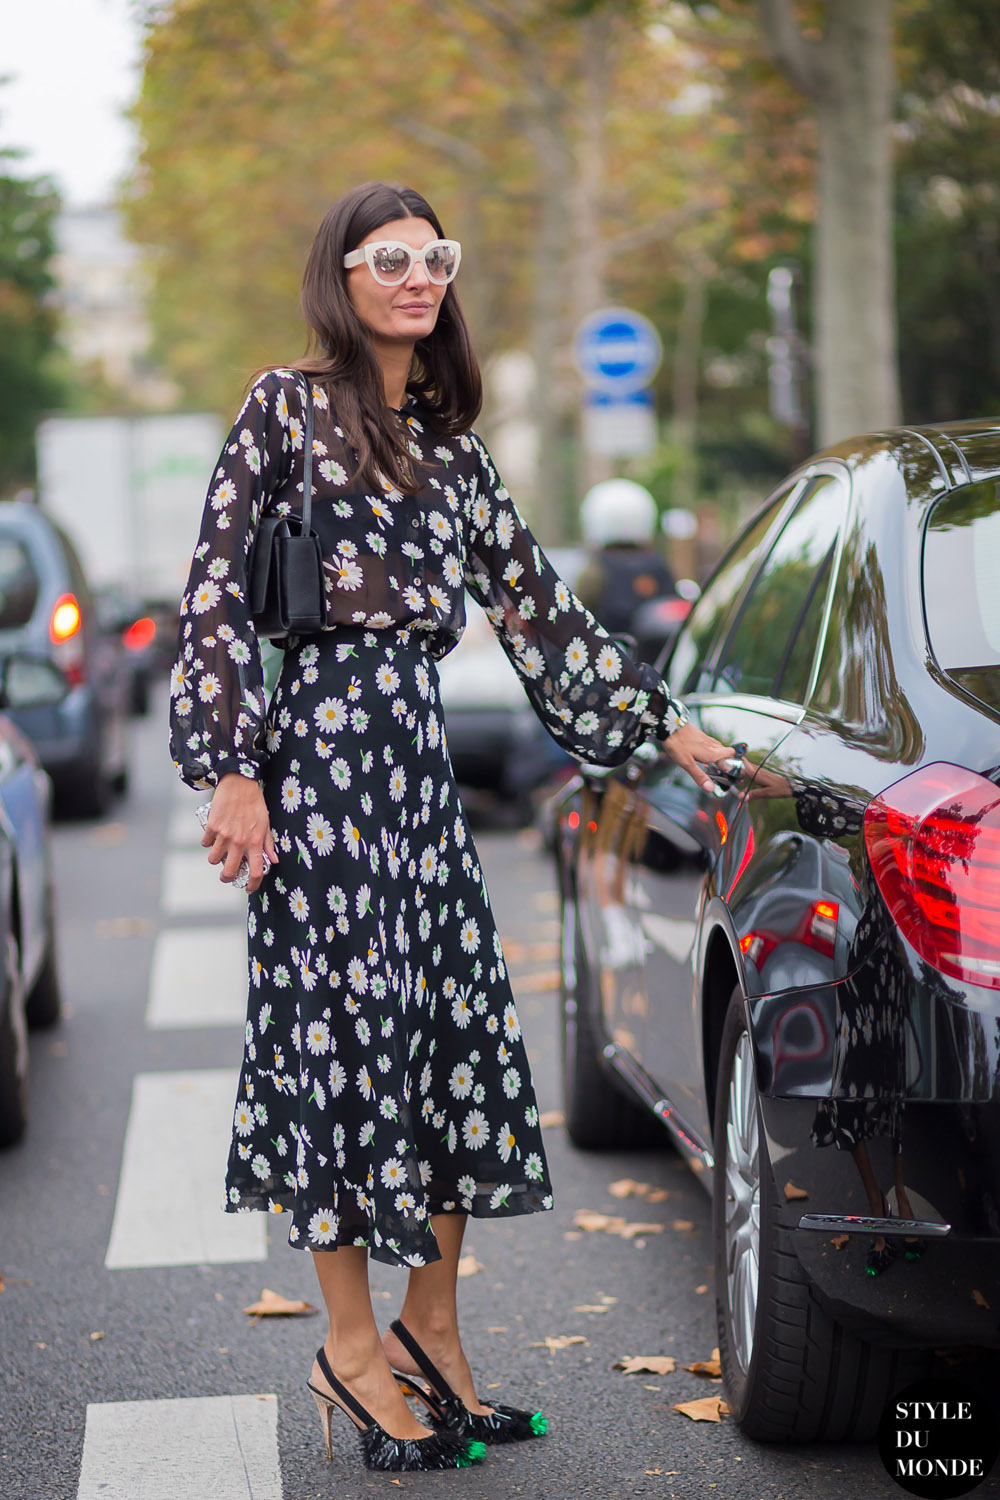 Giovanna-Battaglia-by-STYLEDUMONDE-Street-Style-Fashion-Photography_MG_4611